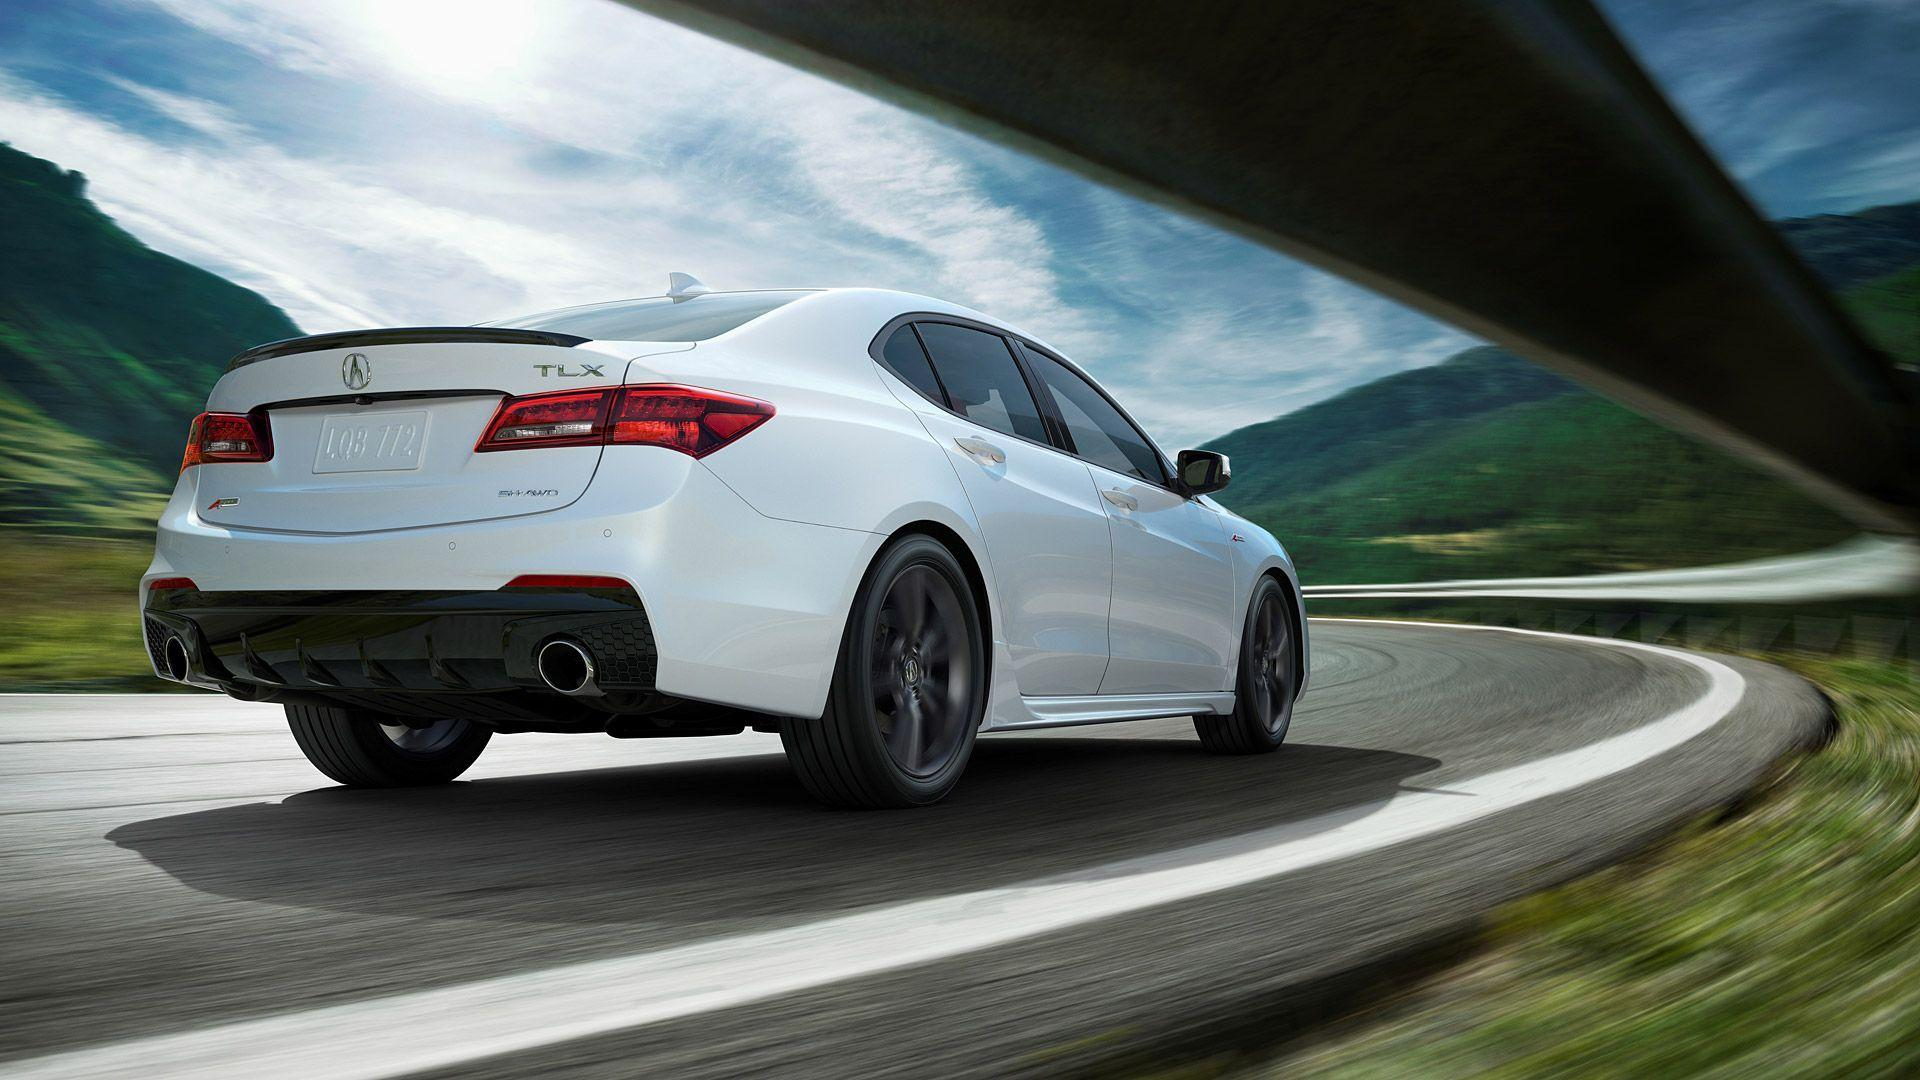 2018 Acura TLX A-Spec Wallpapers & HD Images - WSupercars